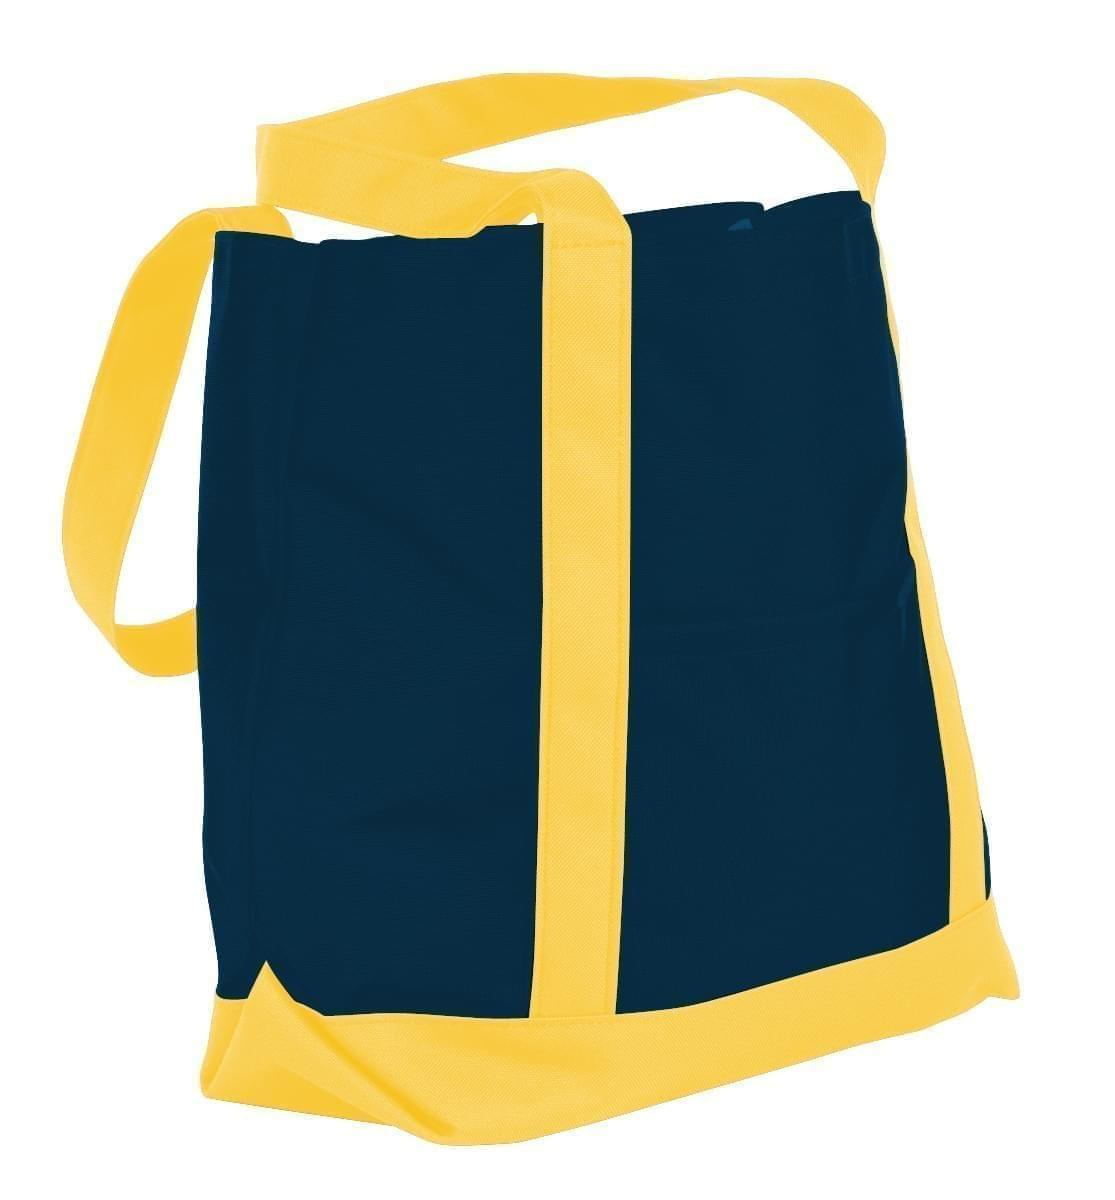 USA Made Canvas Fashion Tote Bags, Navy-Gold, XAACL1UACQ